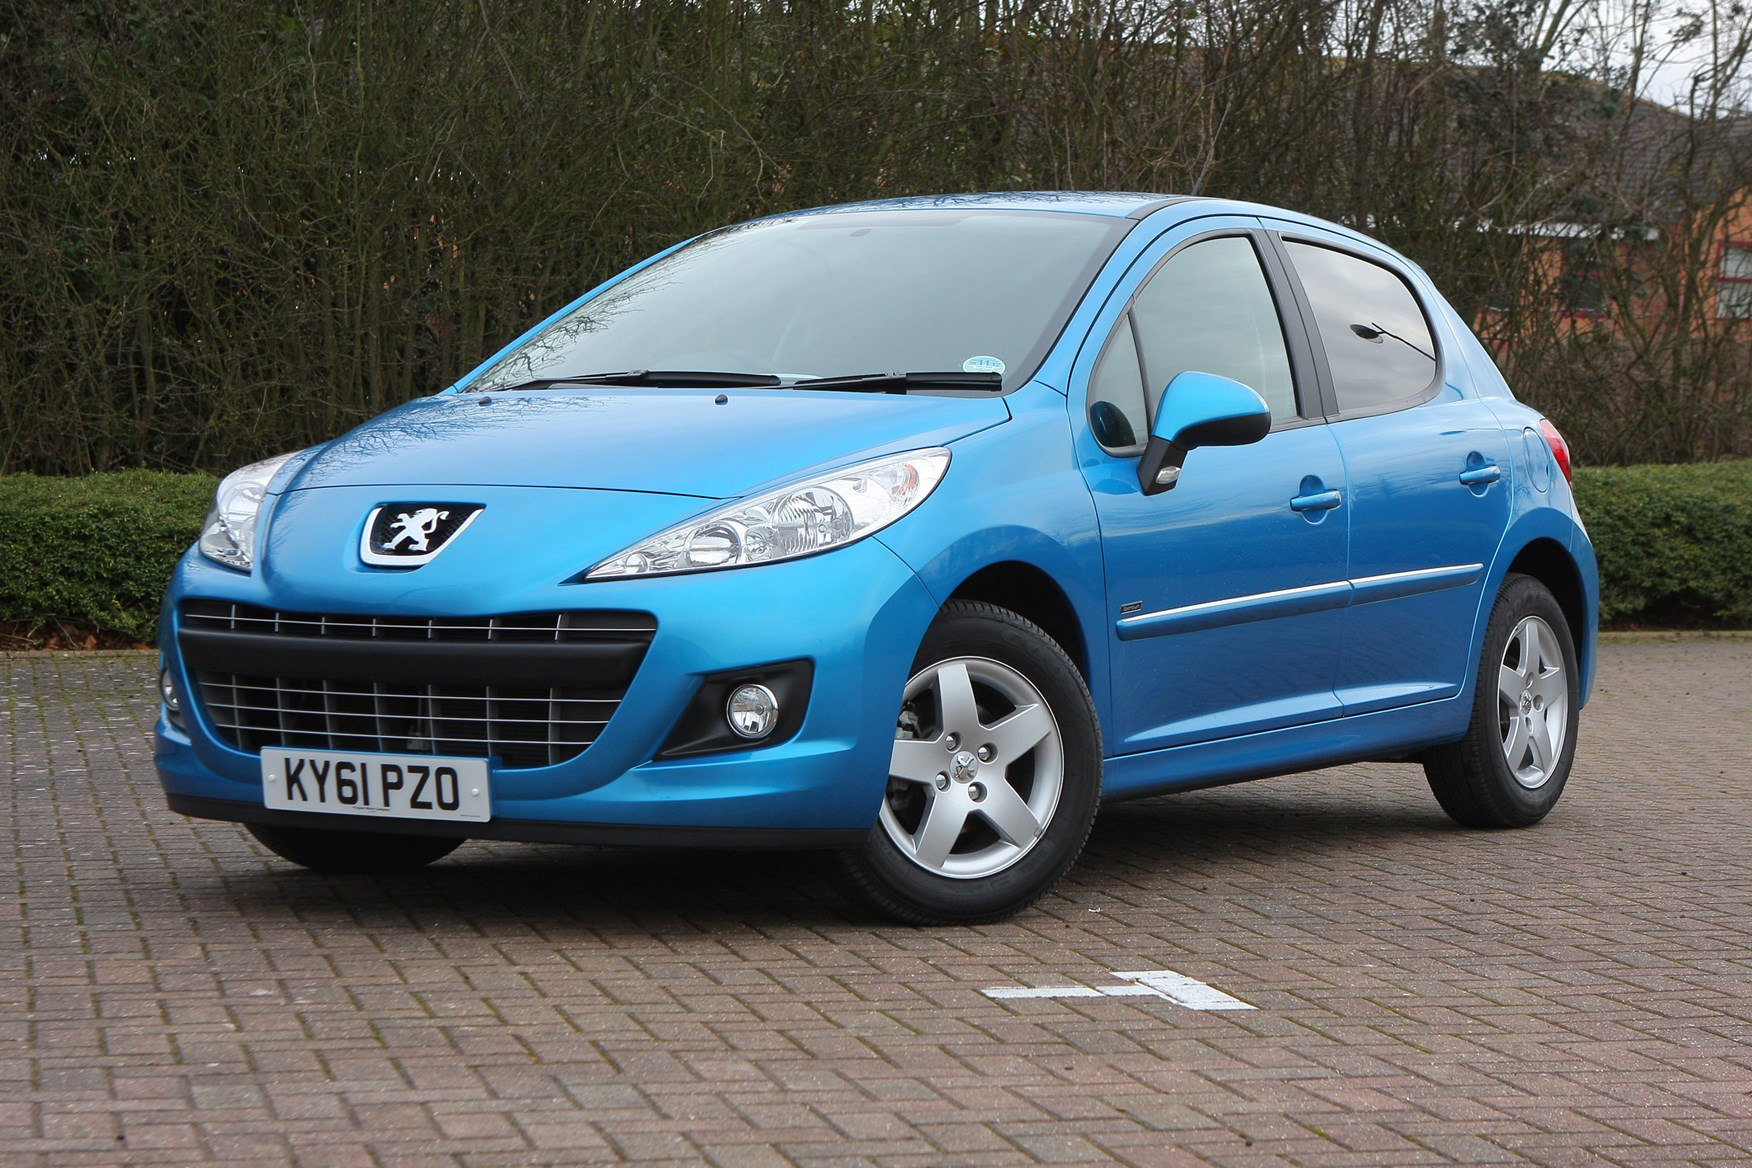 peugeot 207 hatchback (2006 - 2012) features, equipment and